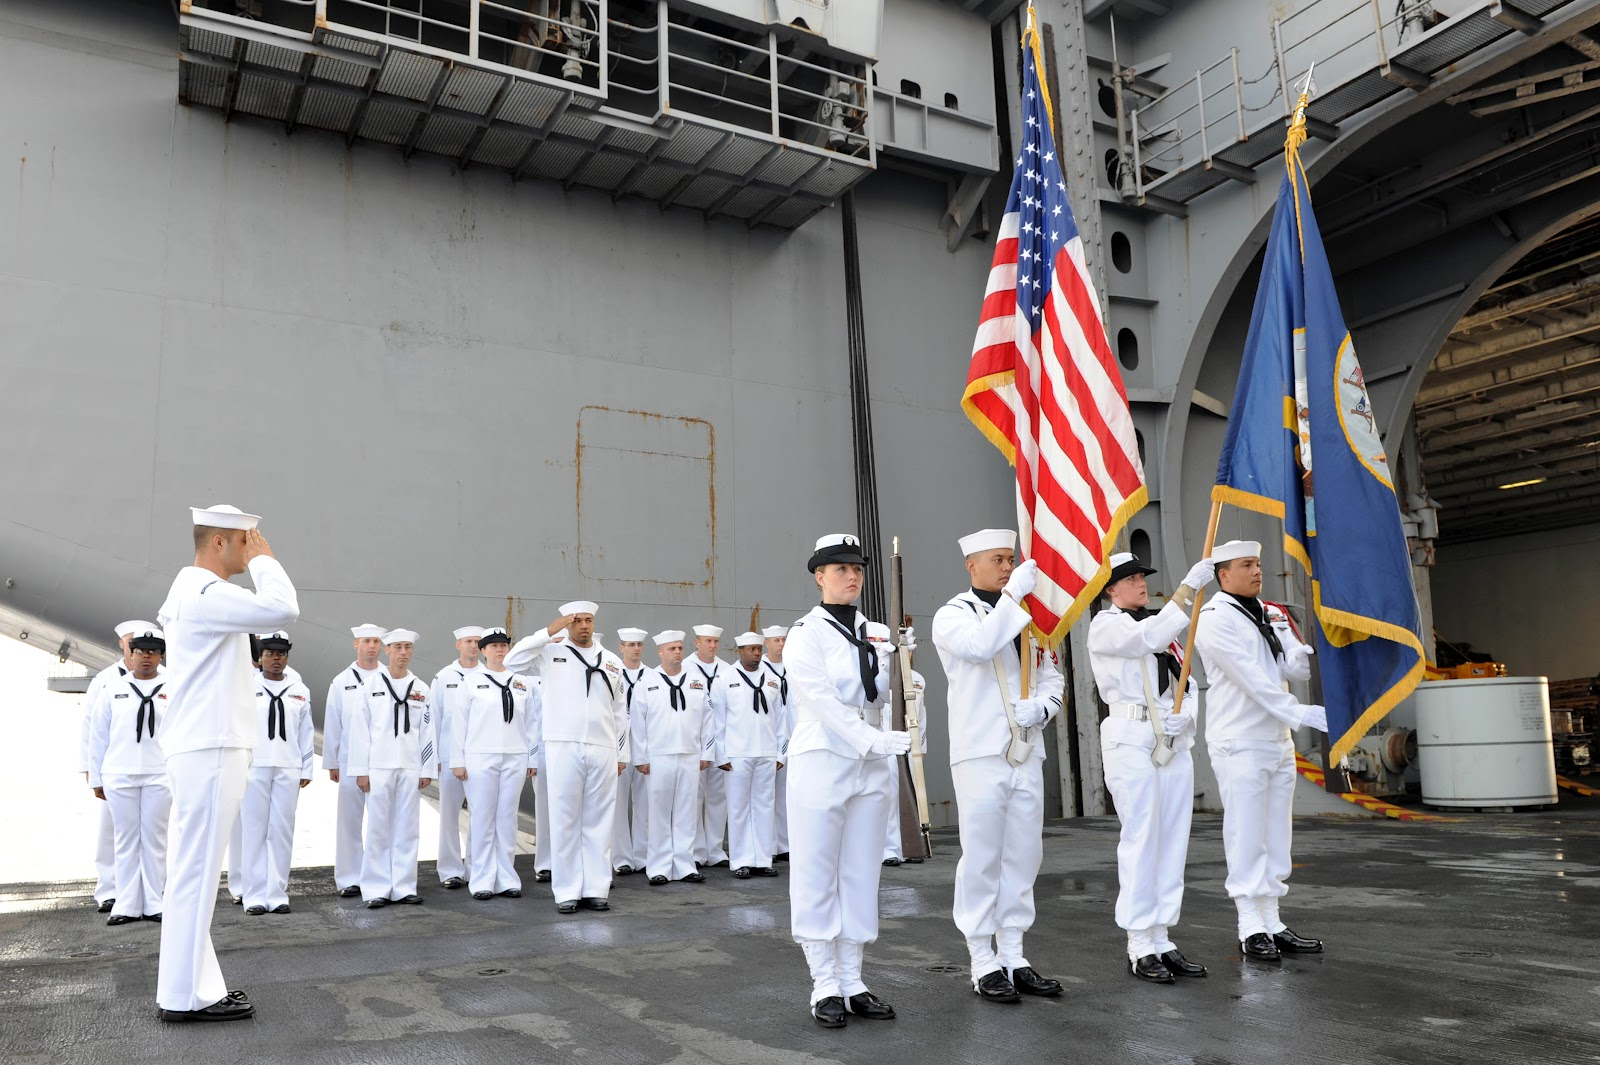 All Photos Released By US Navy